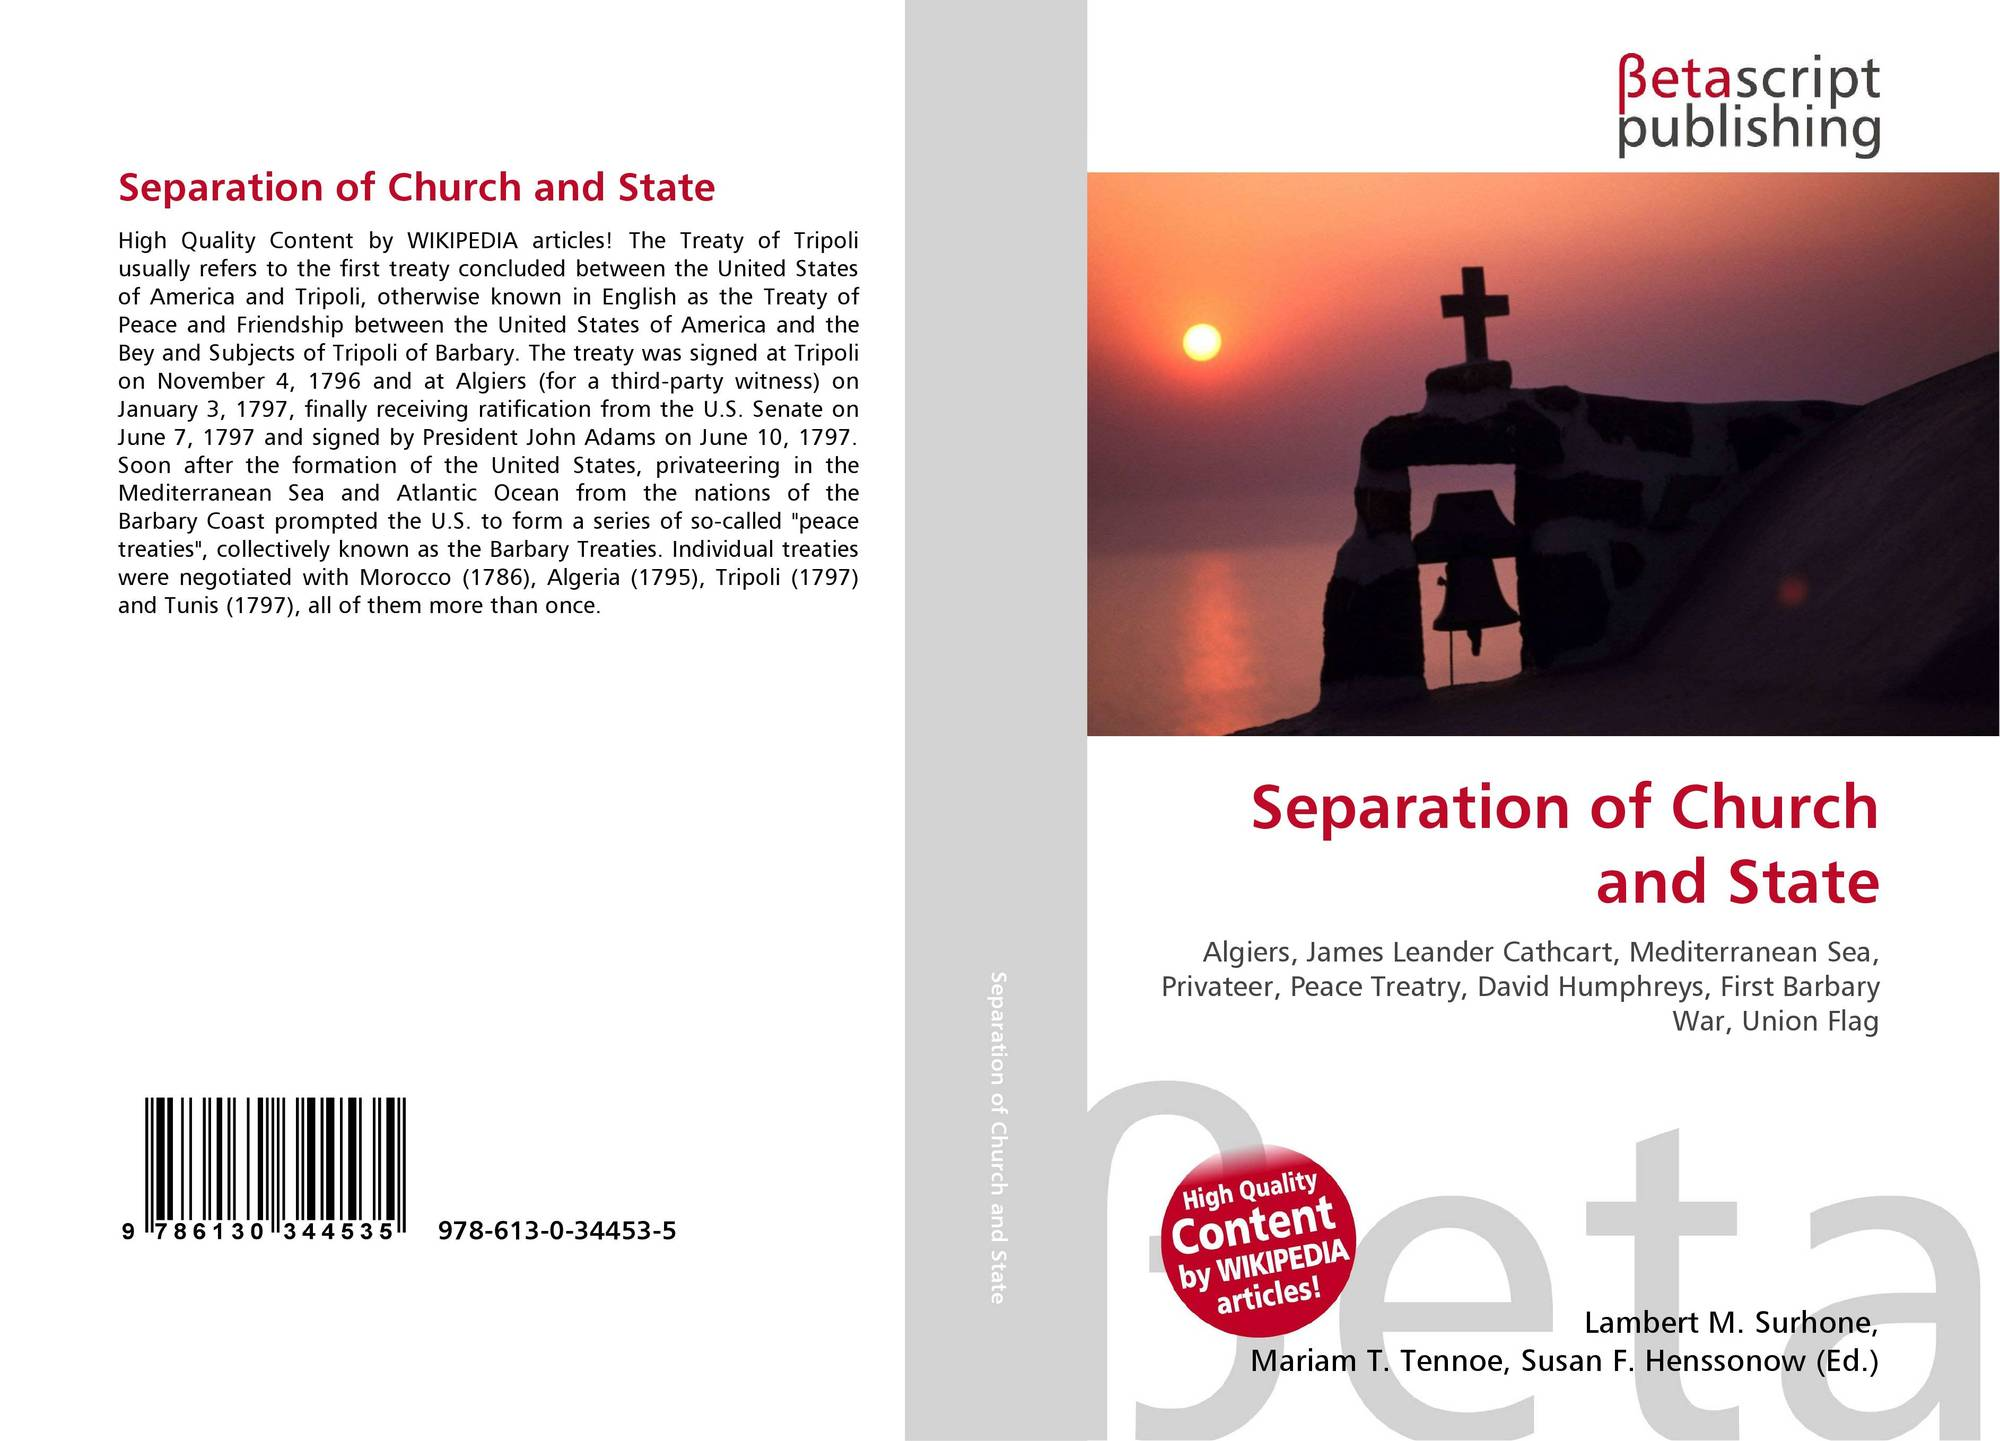 an analysis of separation of church and state in united states